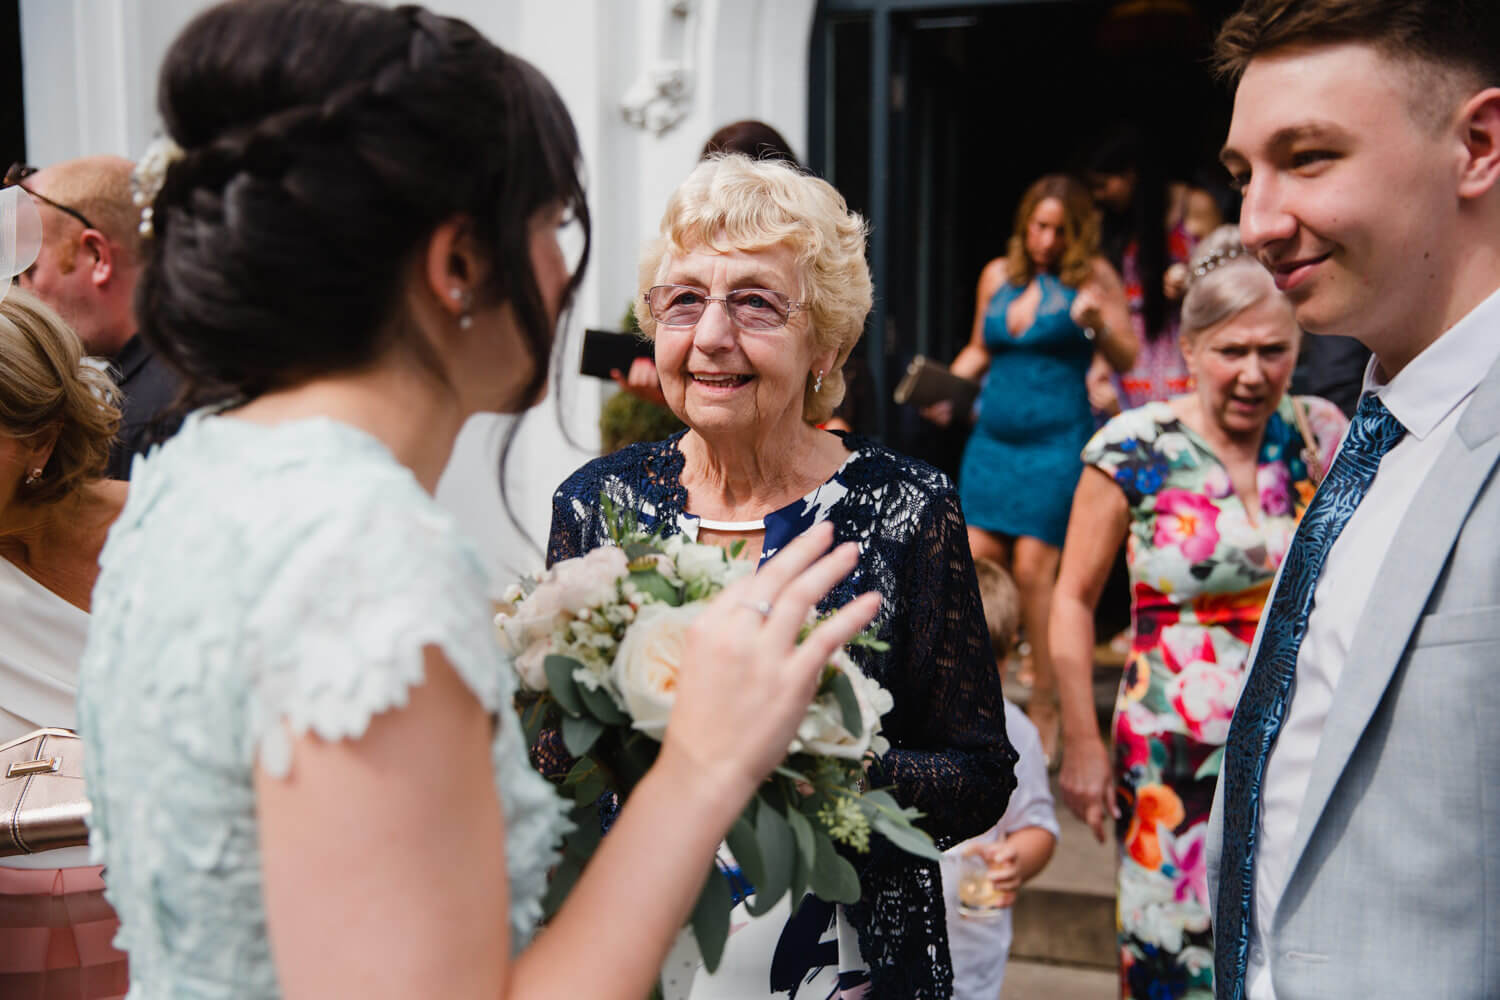 close up intimate photograph of grandma sharing a moment with bridesmaid after ceremony